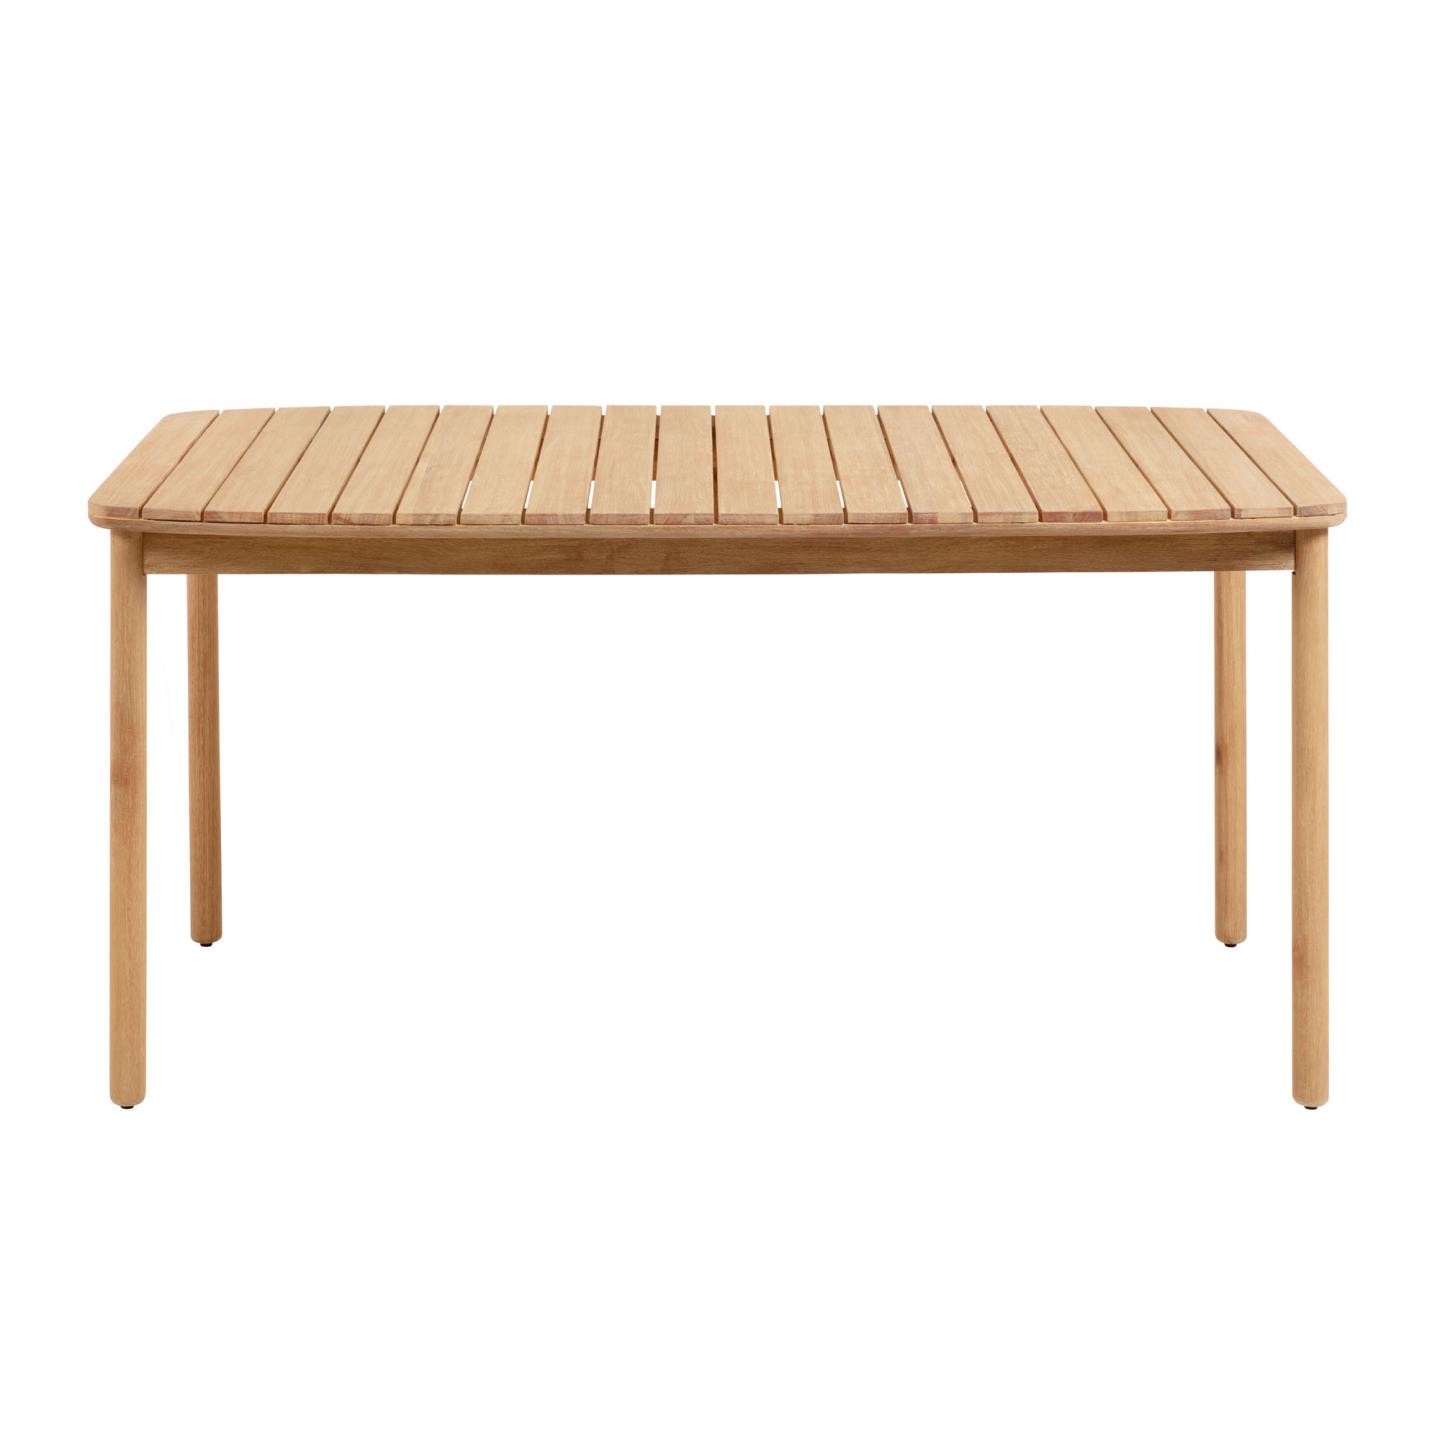 Petone Eucalyptus Timber Outdoor Dining Table, 160cm